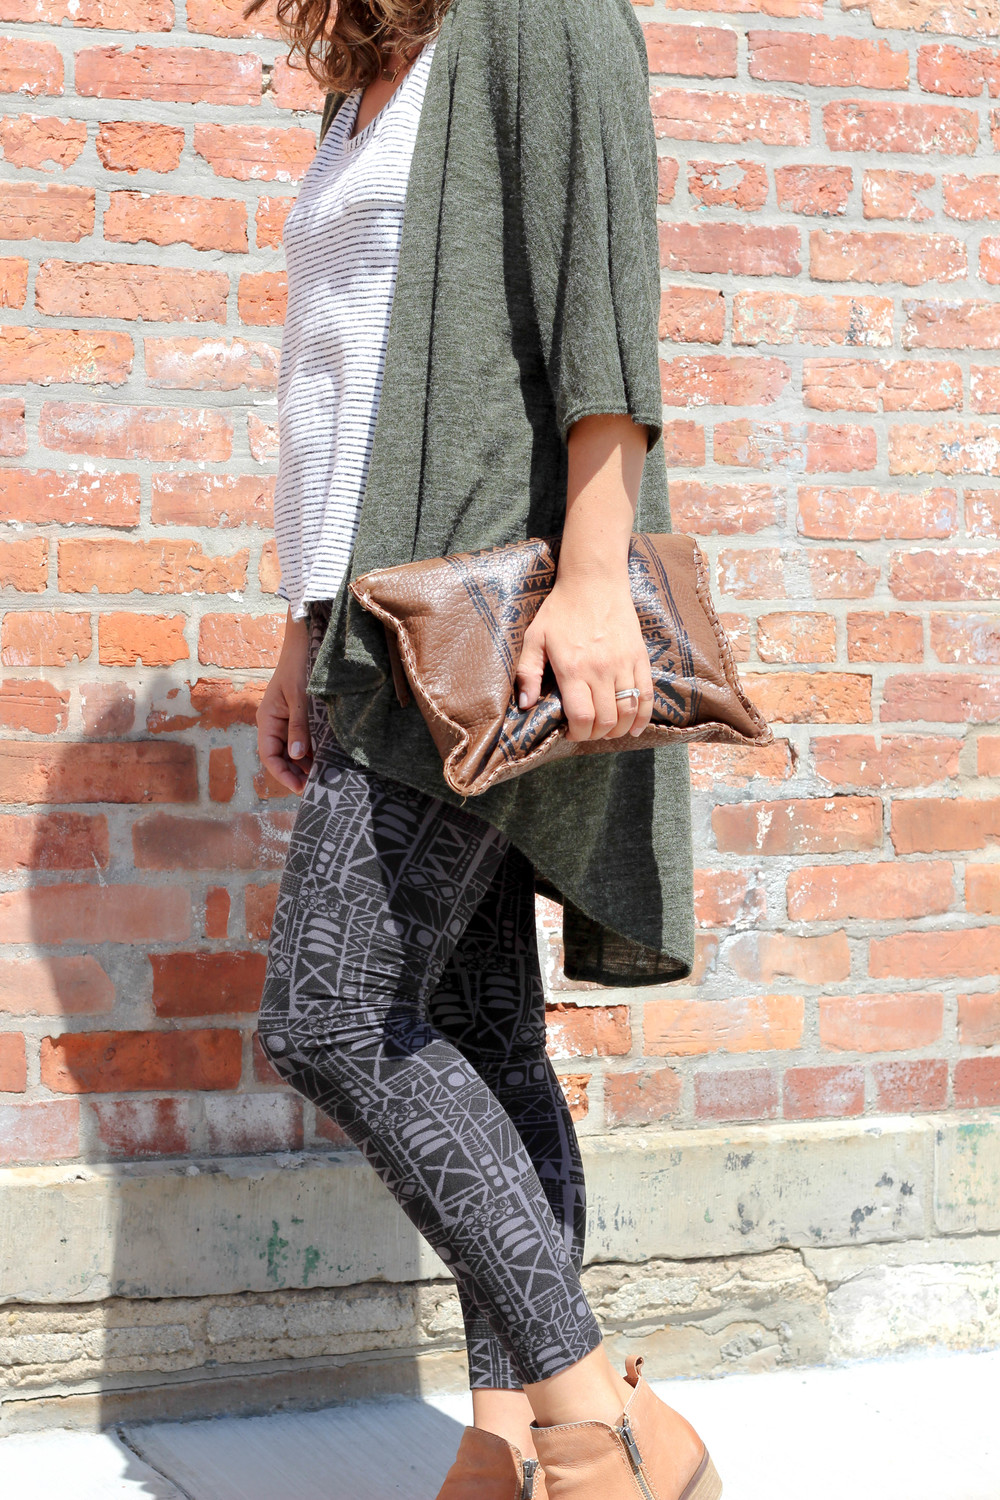 mixing print outfit, styling a kimono, how to style printed leggings, printed leggings for women, comfort fashion, bohemian, patterned pants, army green, mix and match prints, how to wear stripes, get creative with your fall fashion, leather printed clutch, GAP, lucky brand booties, army green kimonos,